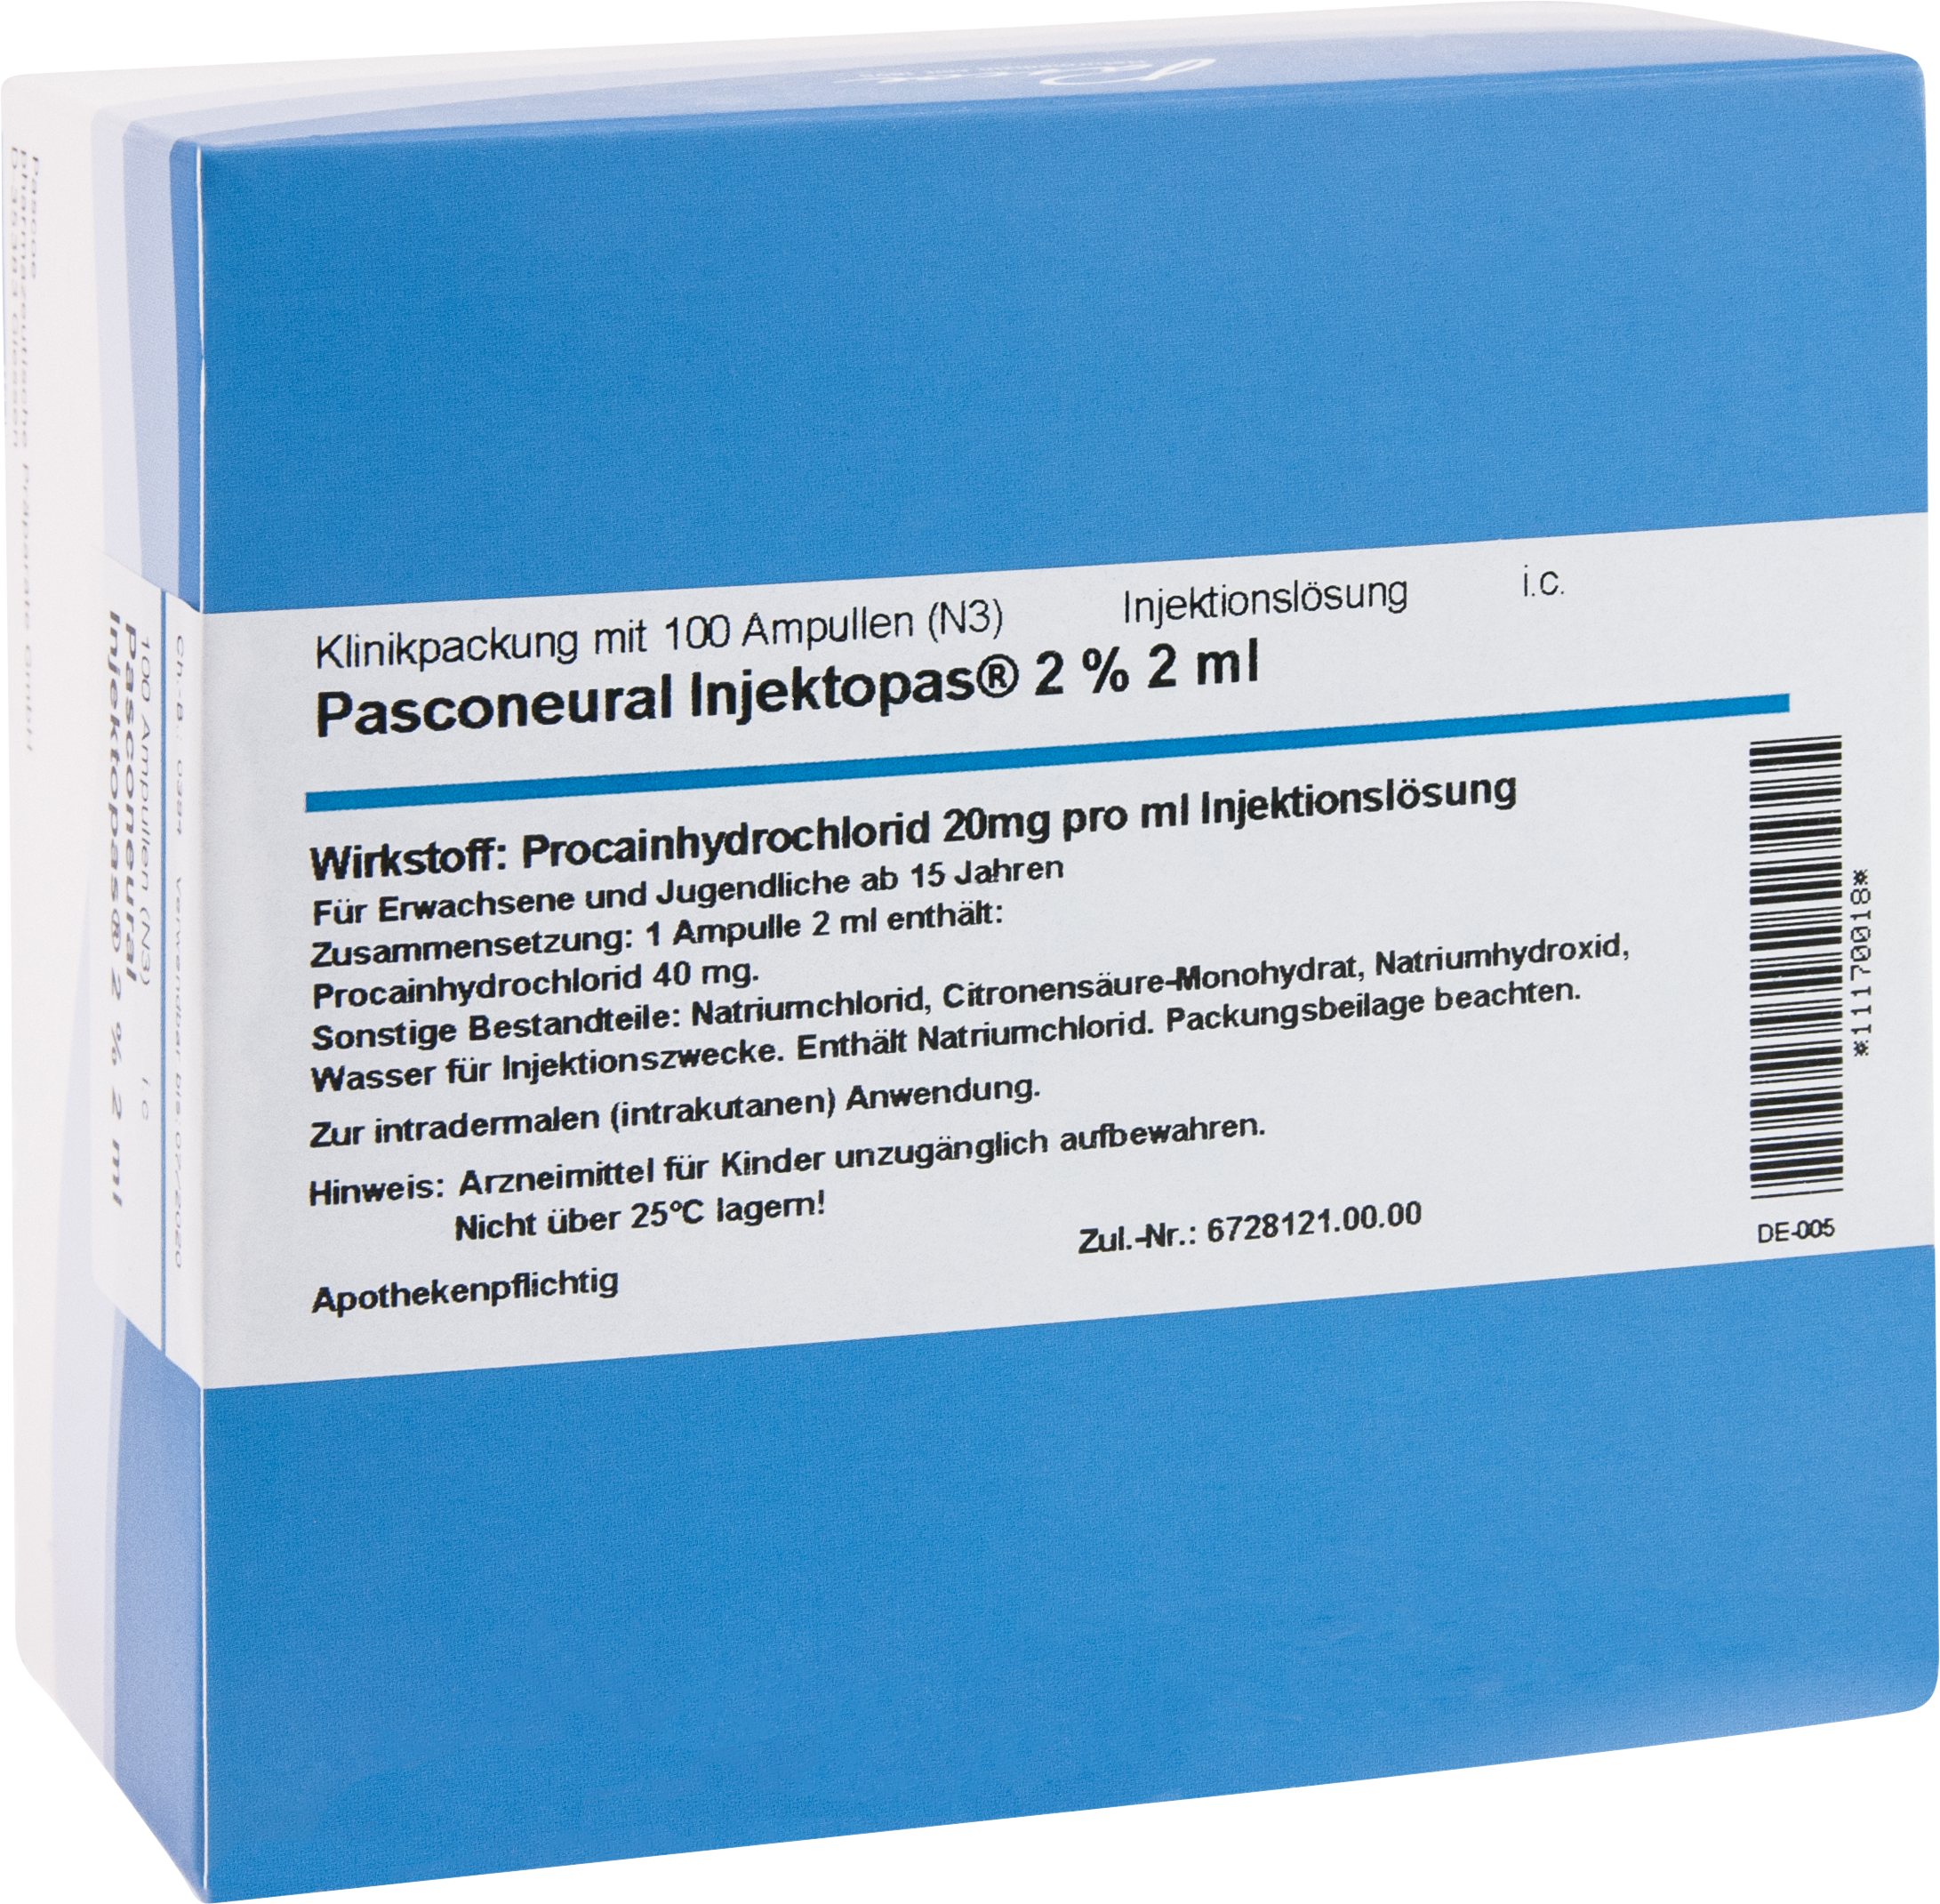 Pasconeural Injektopas 2 % 2 ml